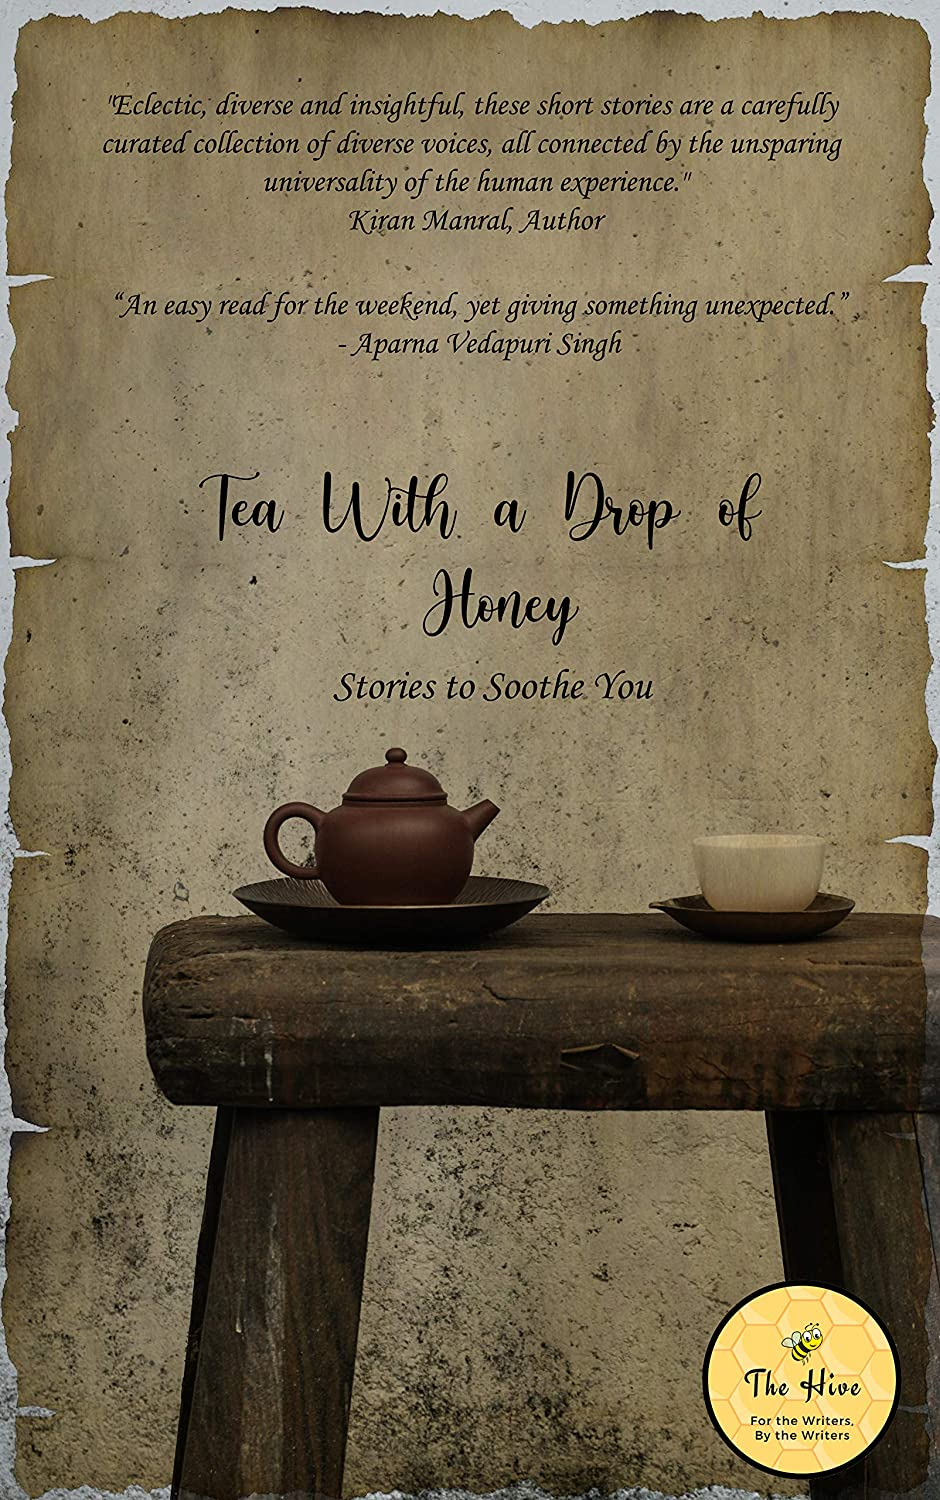 Tea with a Drop of Honey eBook: Hive, The: Amazon.in: Kindle Store